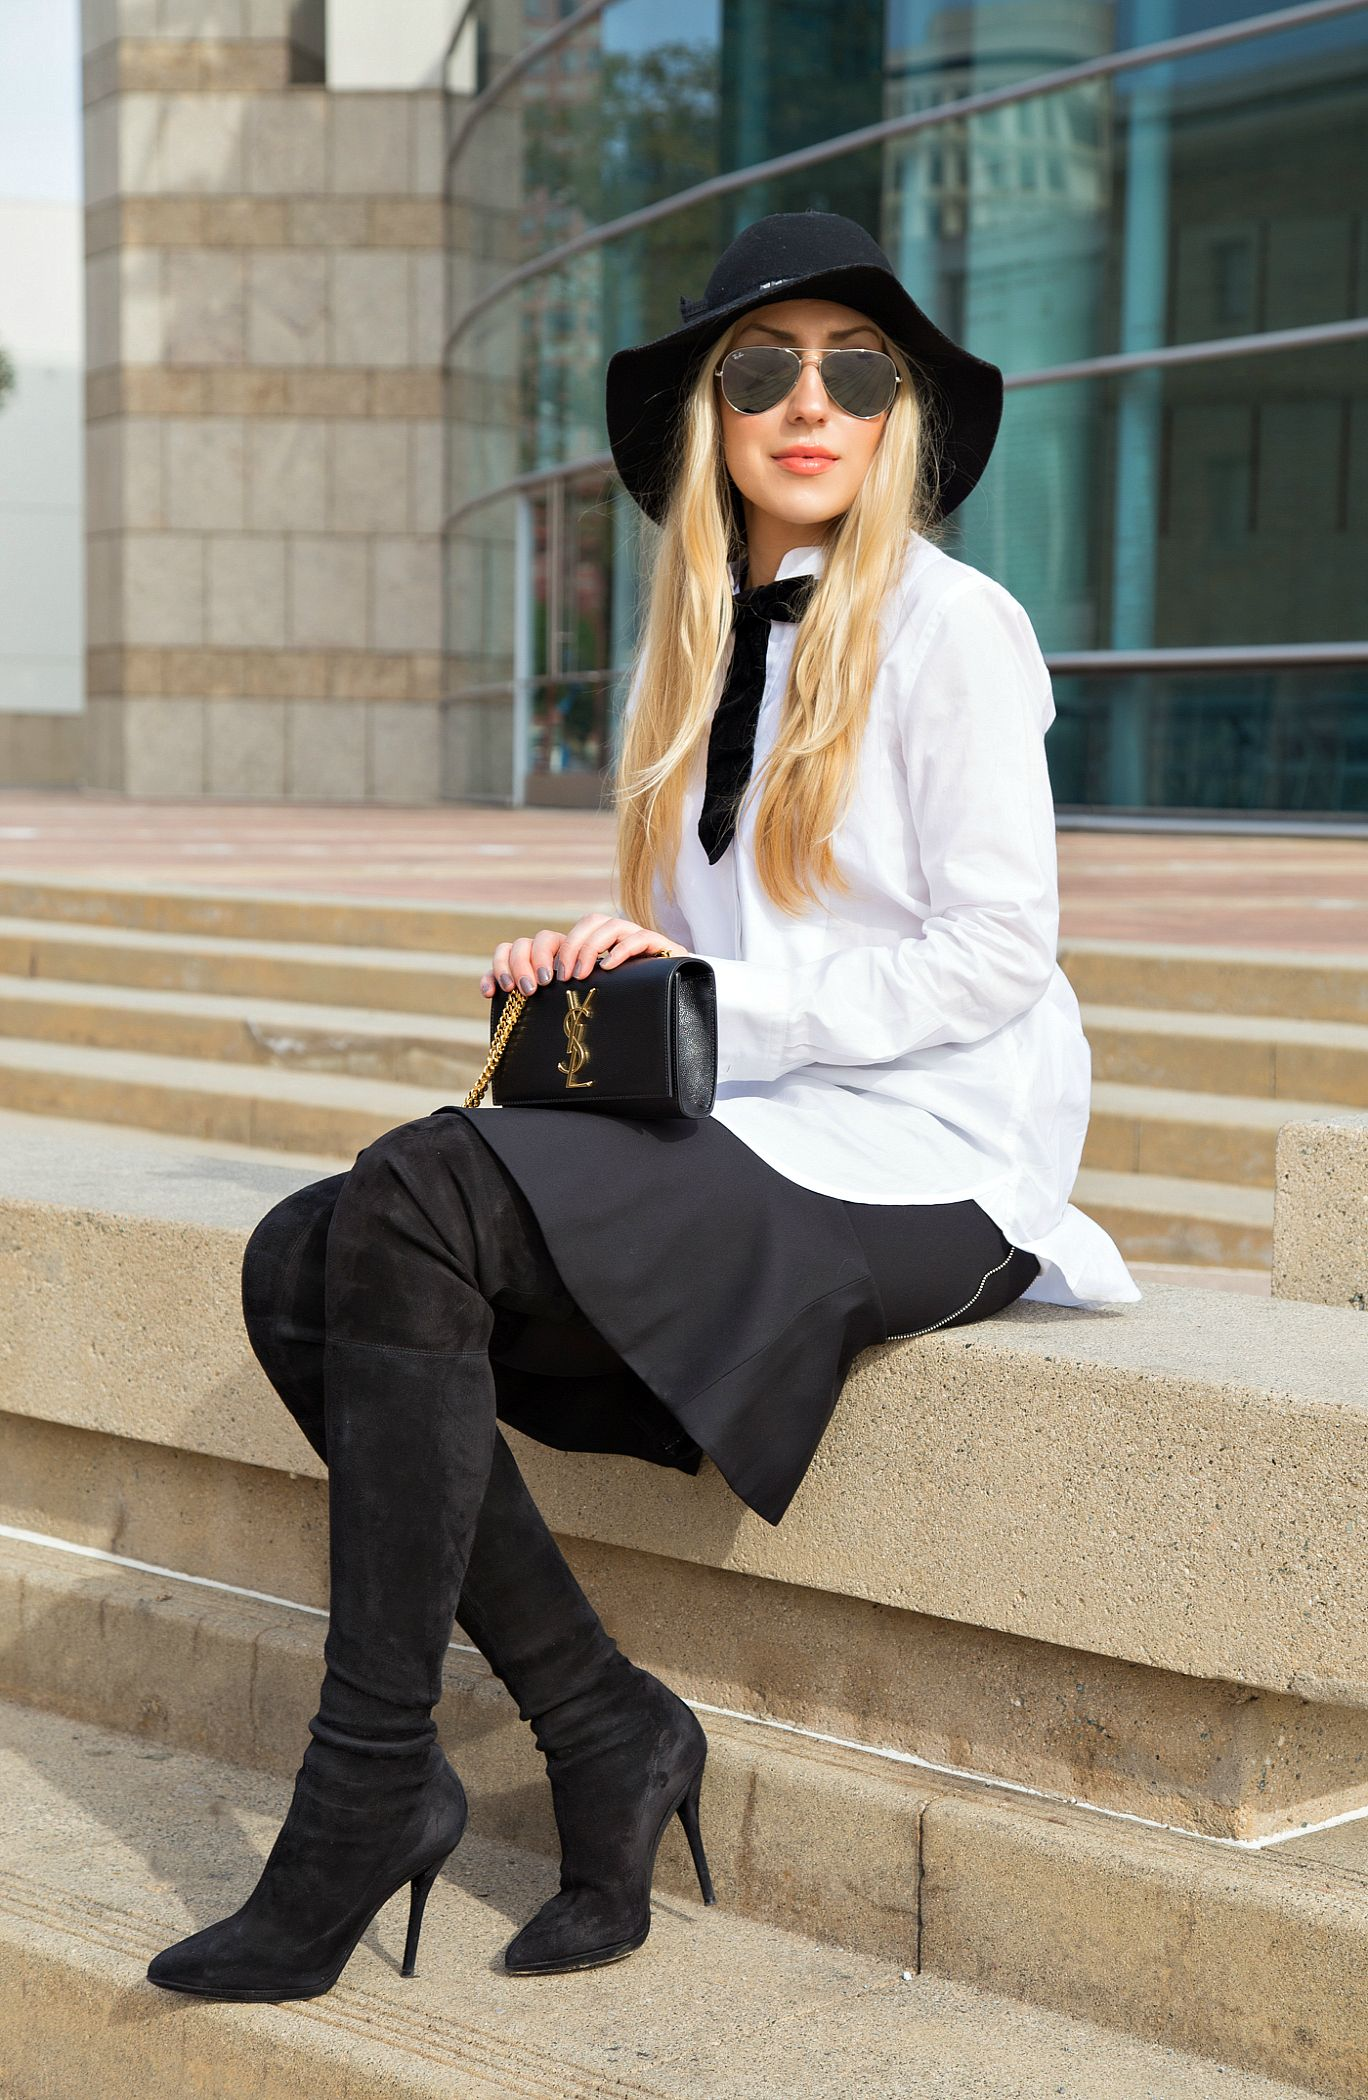 white shirt with Black Skirt Outfit Inspiration,Black Tie ...